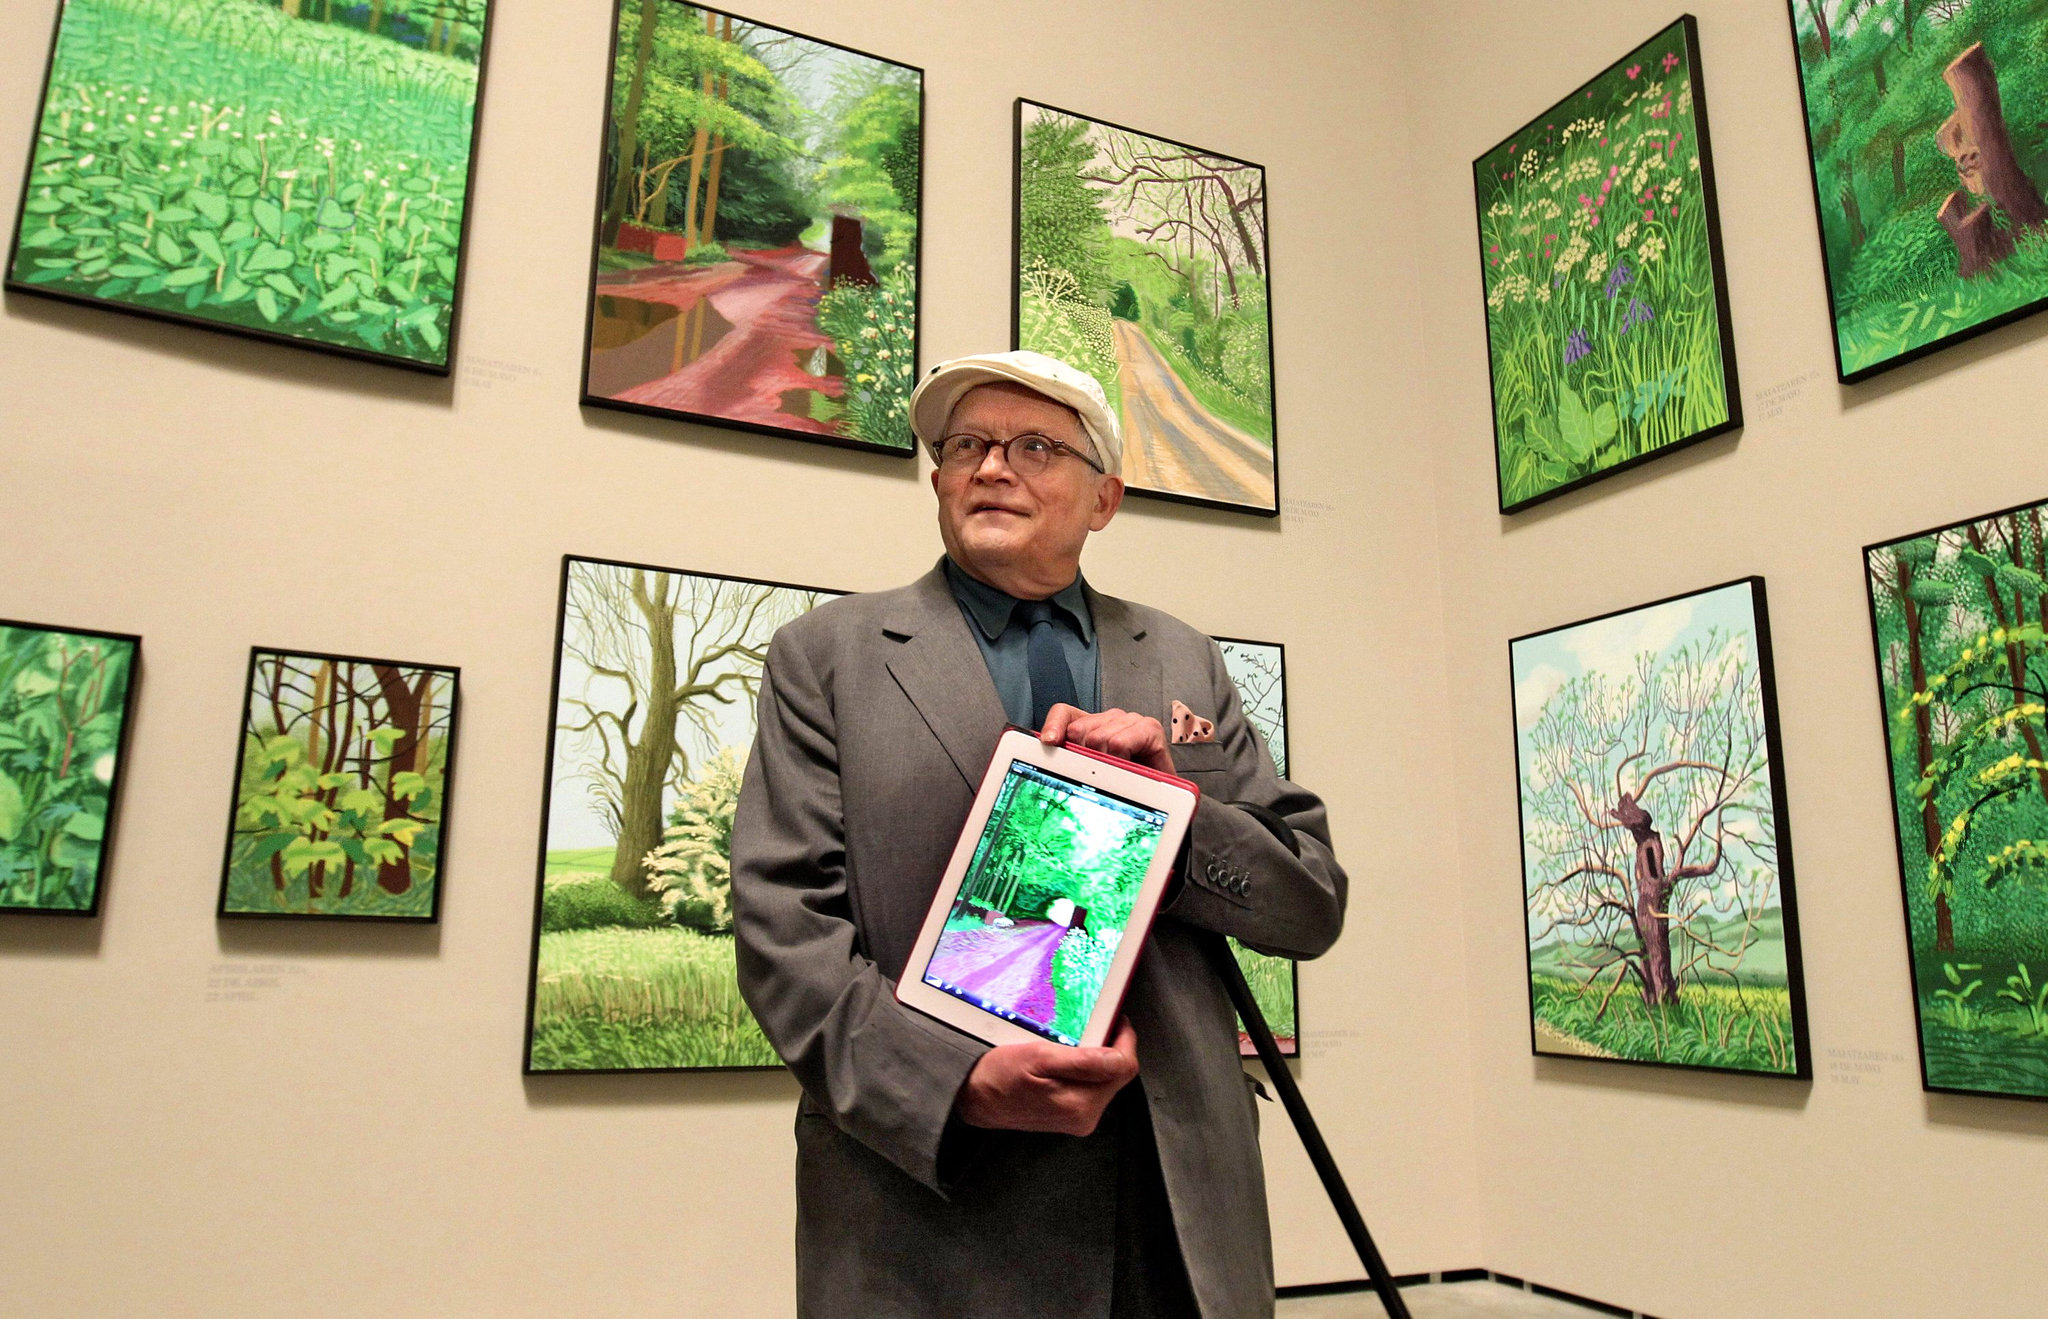 David Hockney with Ipad